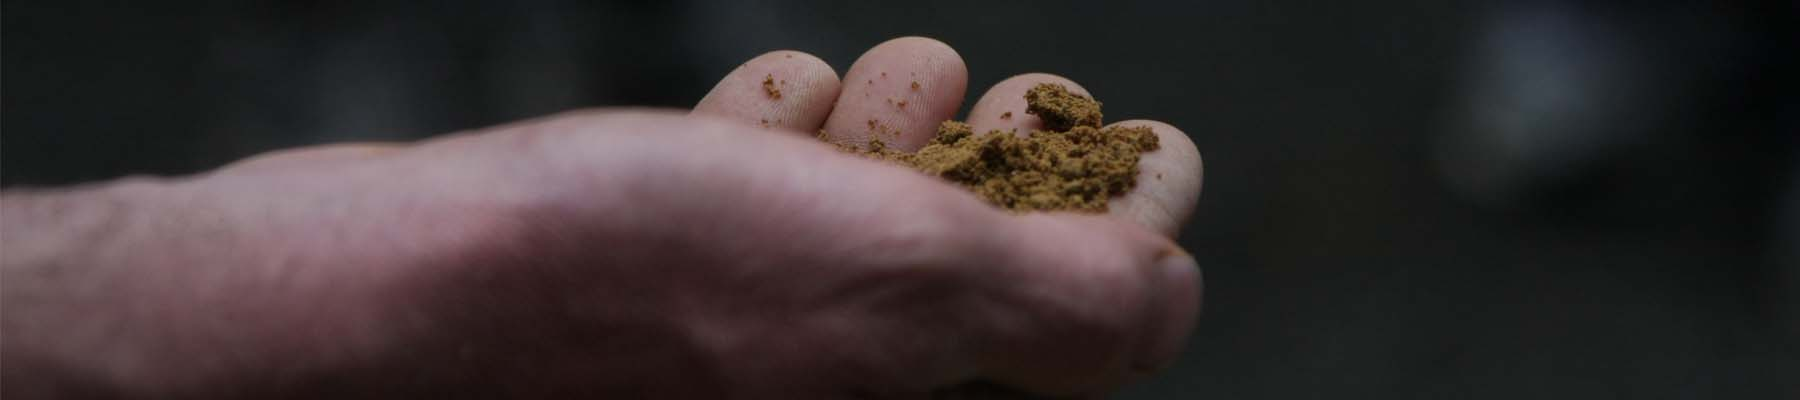 hand with dirt